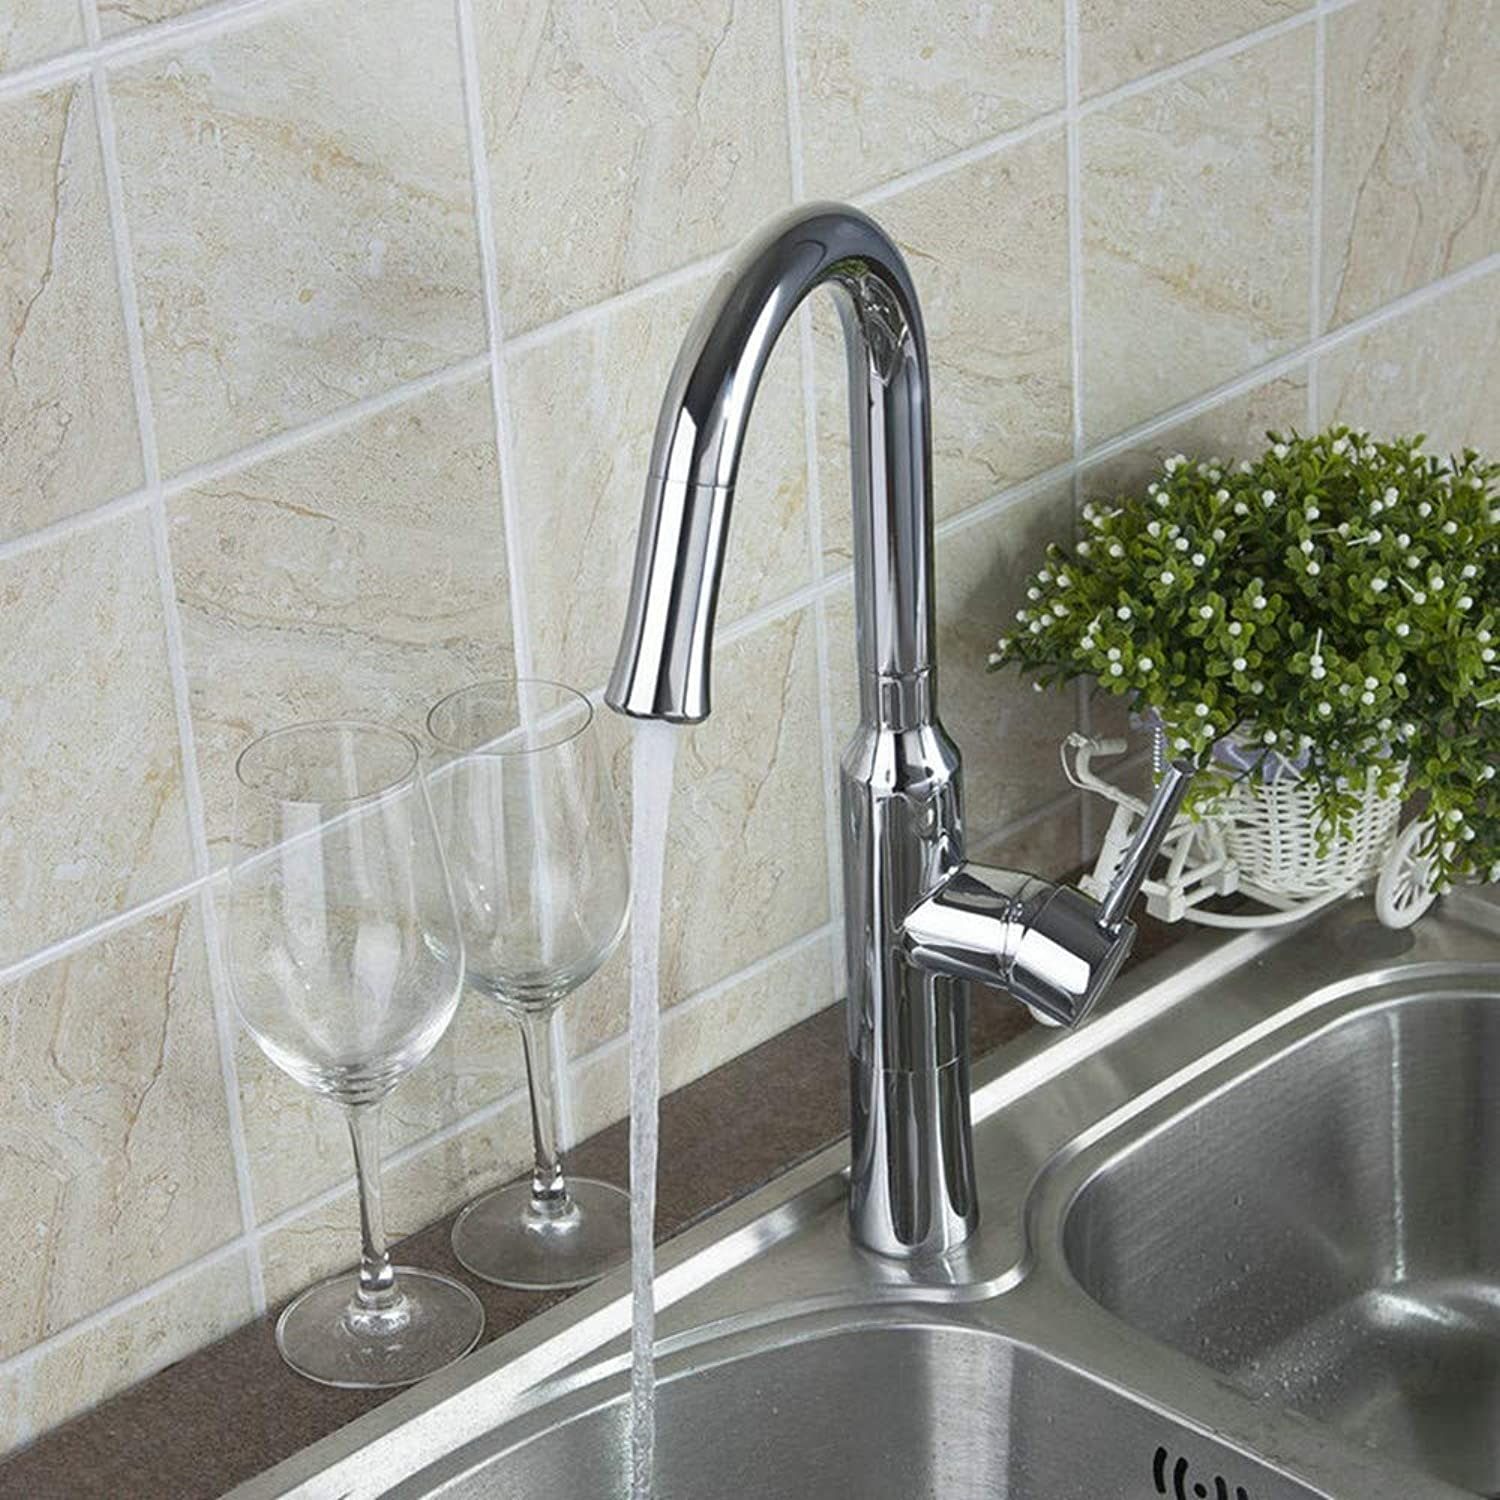 KUNHAN Kitchen Sink Faucet Tap redating 360 Single Handle Deck To Install Sink Sink Faucet, Mixer